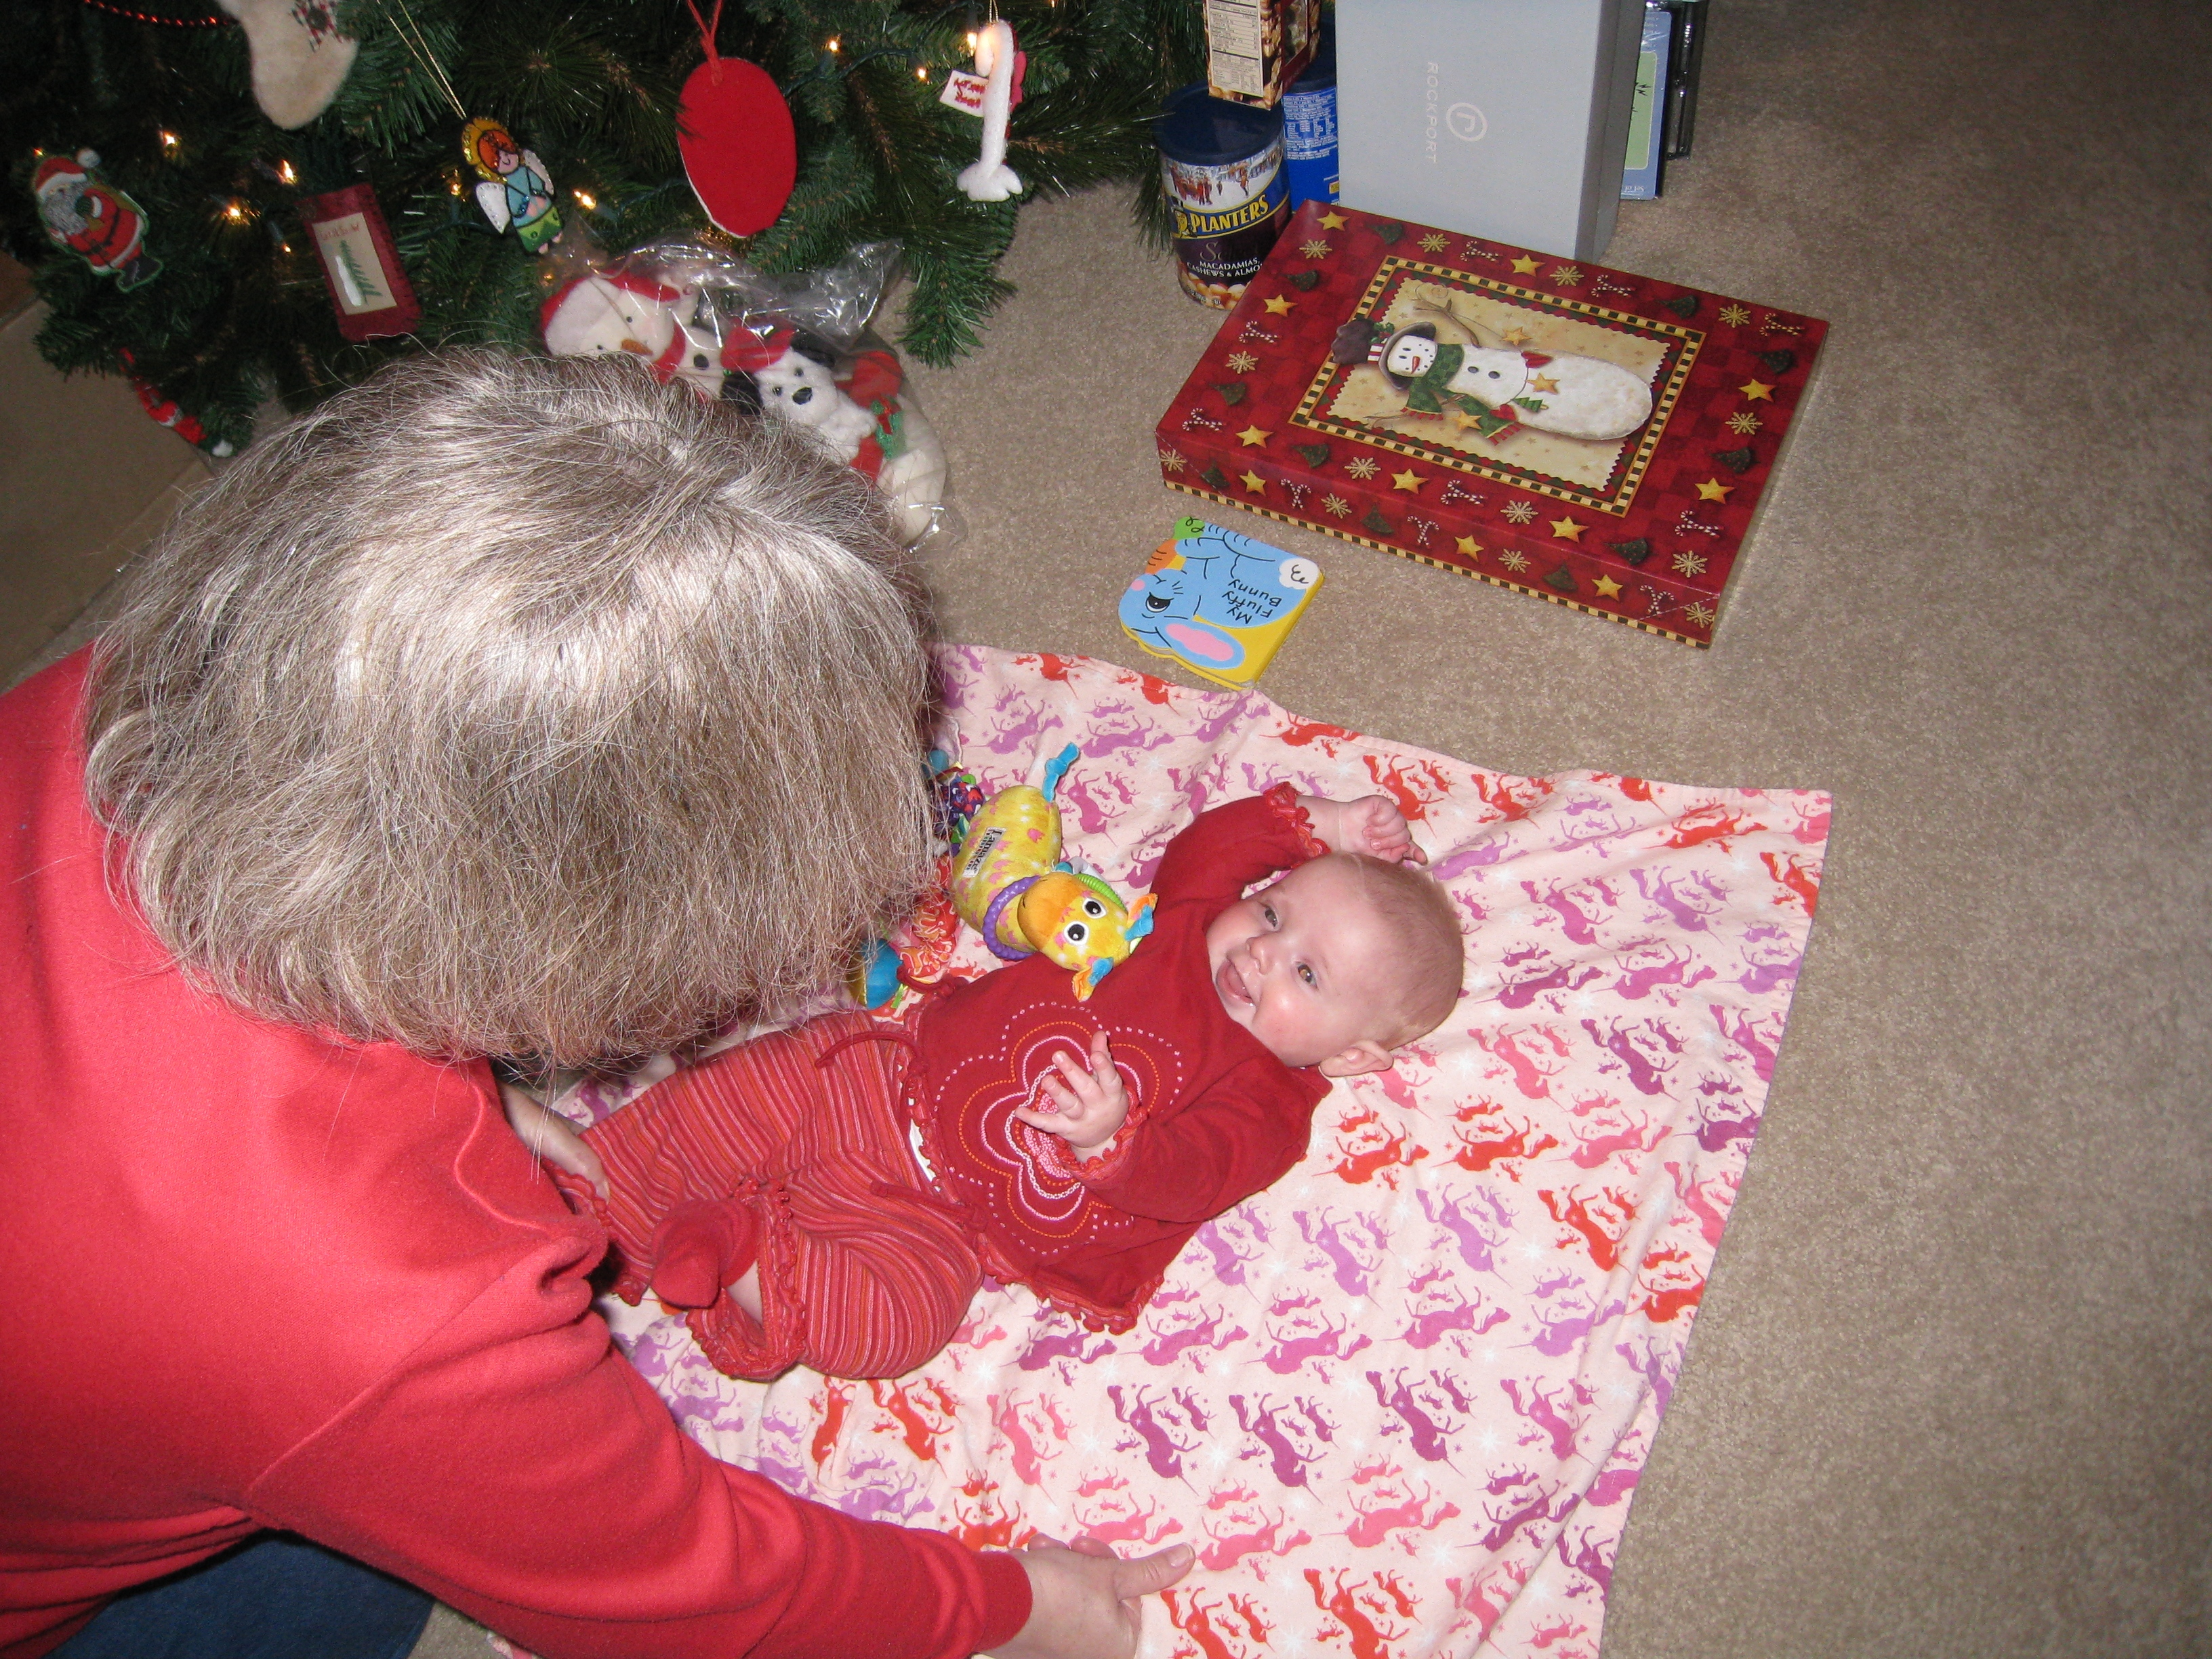 play-with-grandma-sandy-on-the-floor